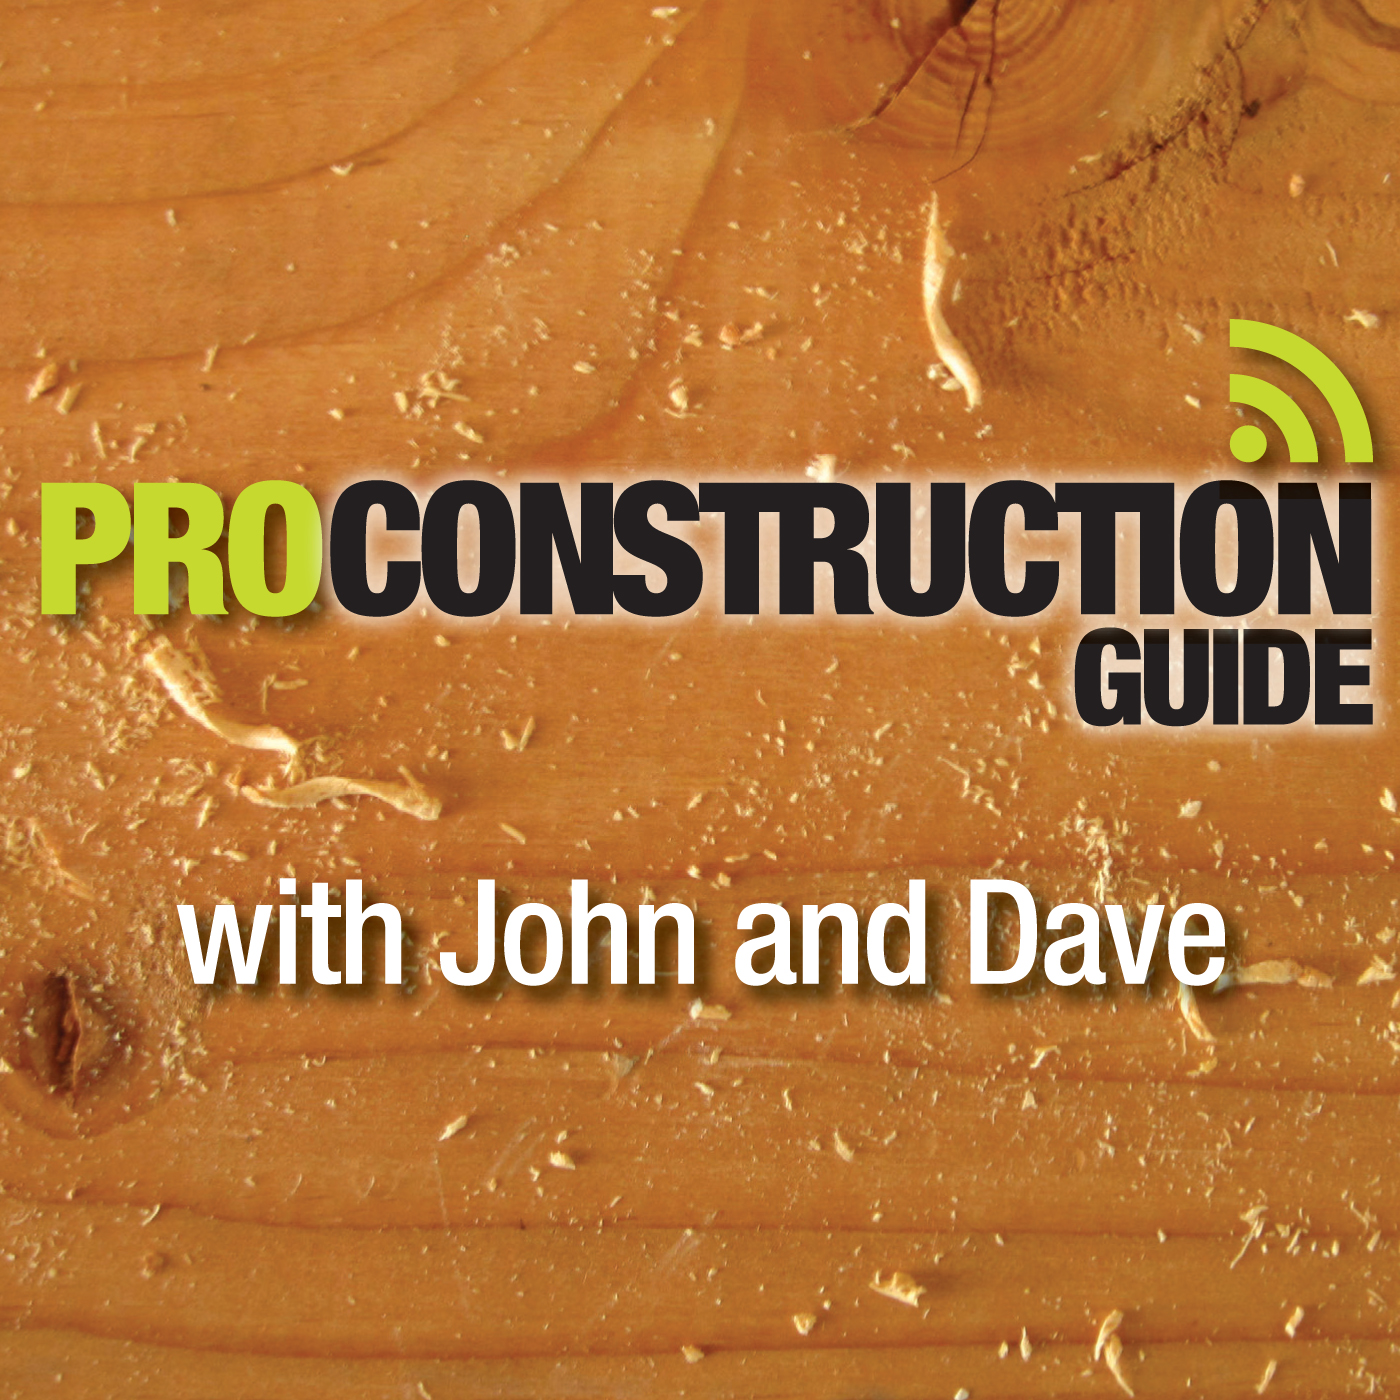 Pro Construction Guide Podcast for Pros